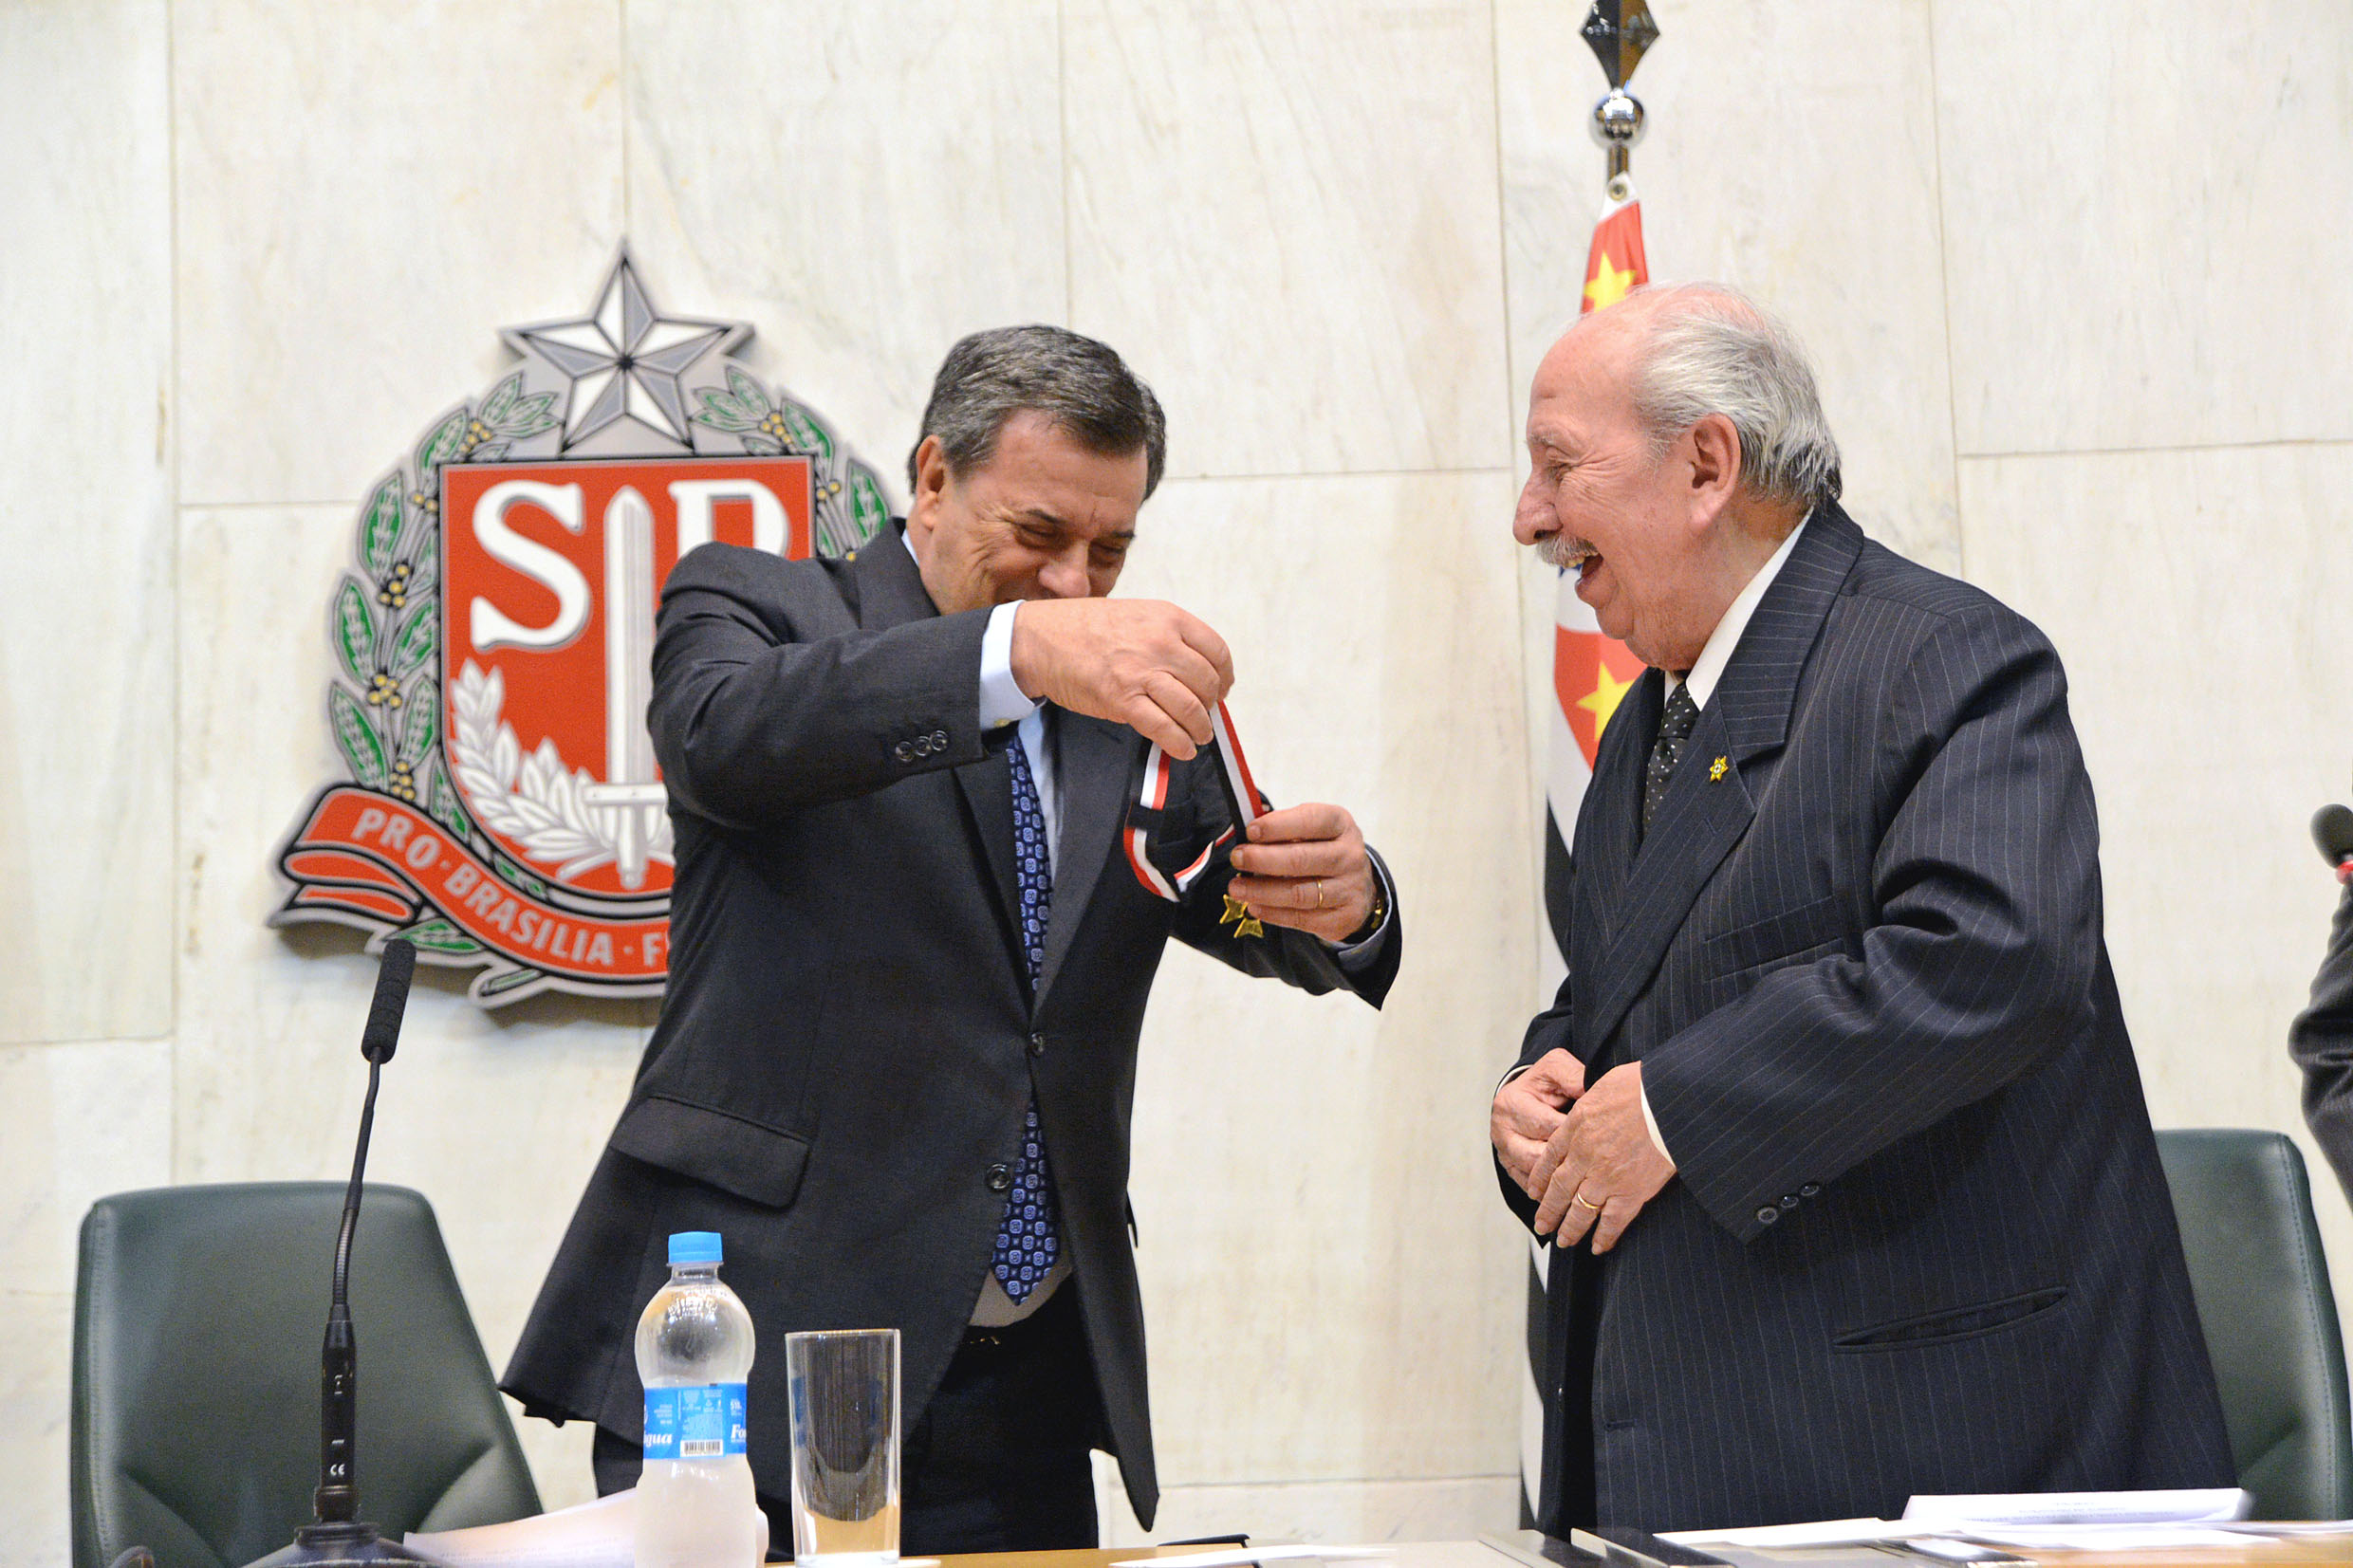 Roberto Massafera e Almino Affonso<a style='float:right' href='https://www3.al.sp.gov.br/repositorio/noticia/N-02-2019/fg230341.jpg' target=_blank><img src='/_img/material-file-download-white.png' width='14px' alt='Clique para baixar a imagem'></a>